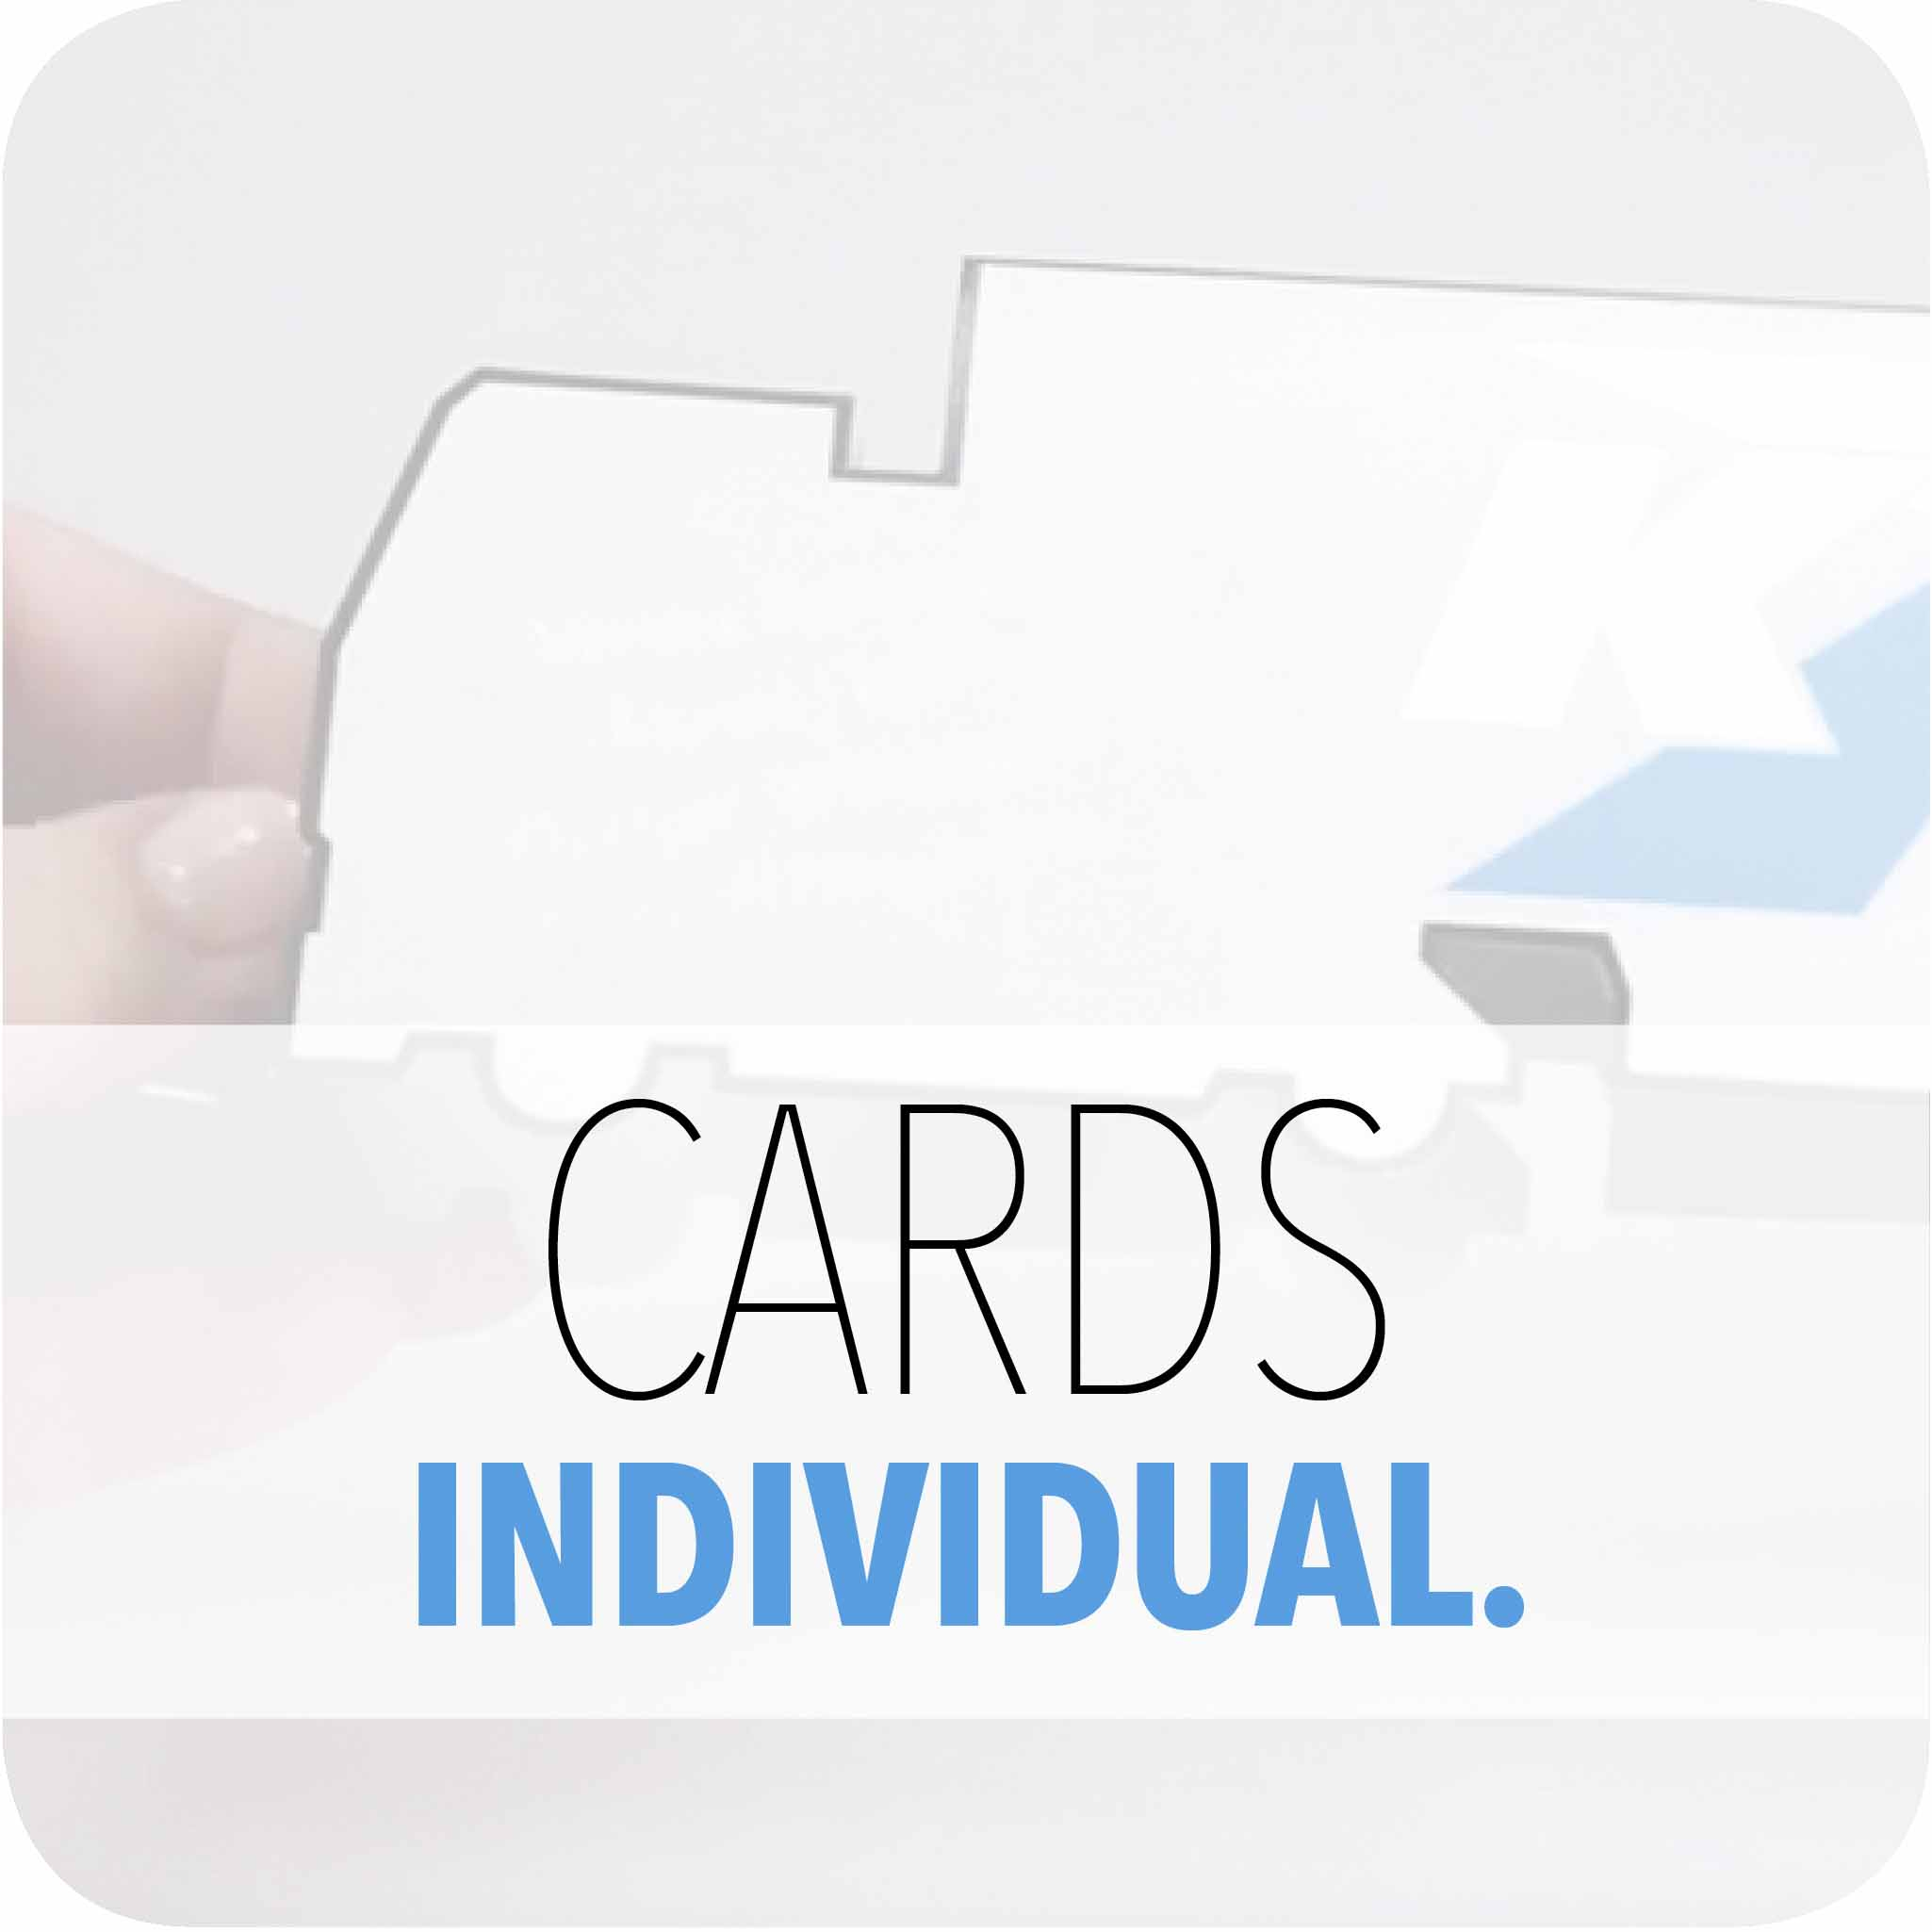 CARDS INDIVIDUAL